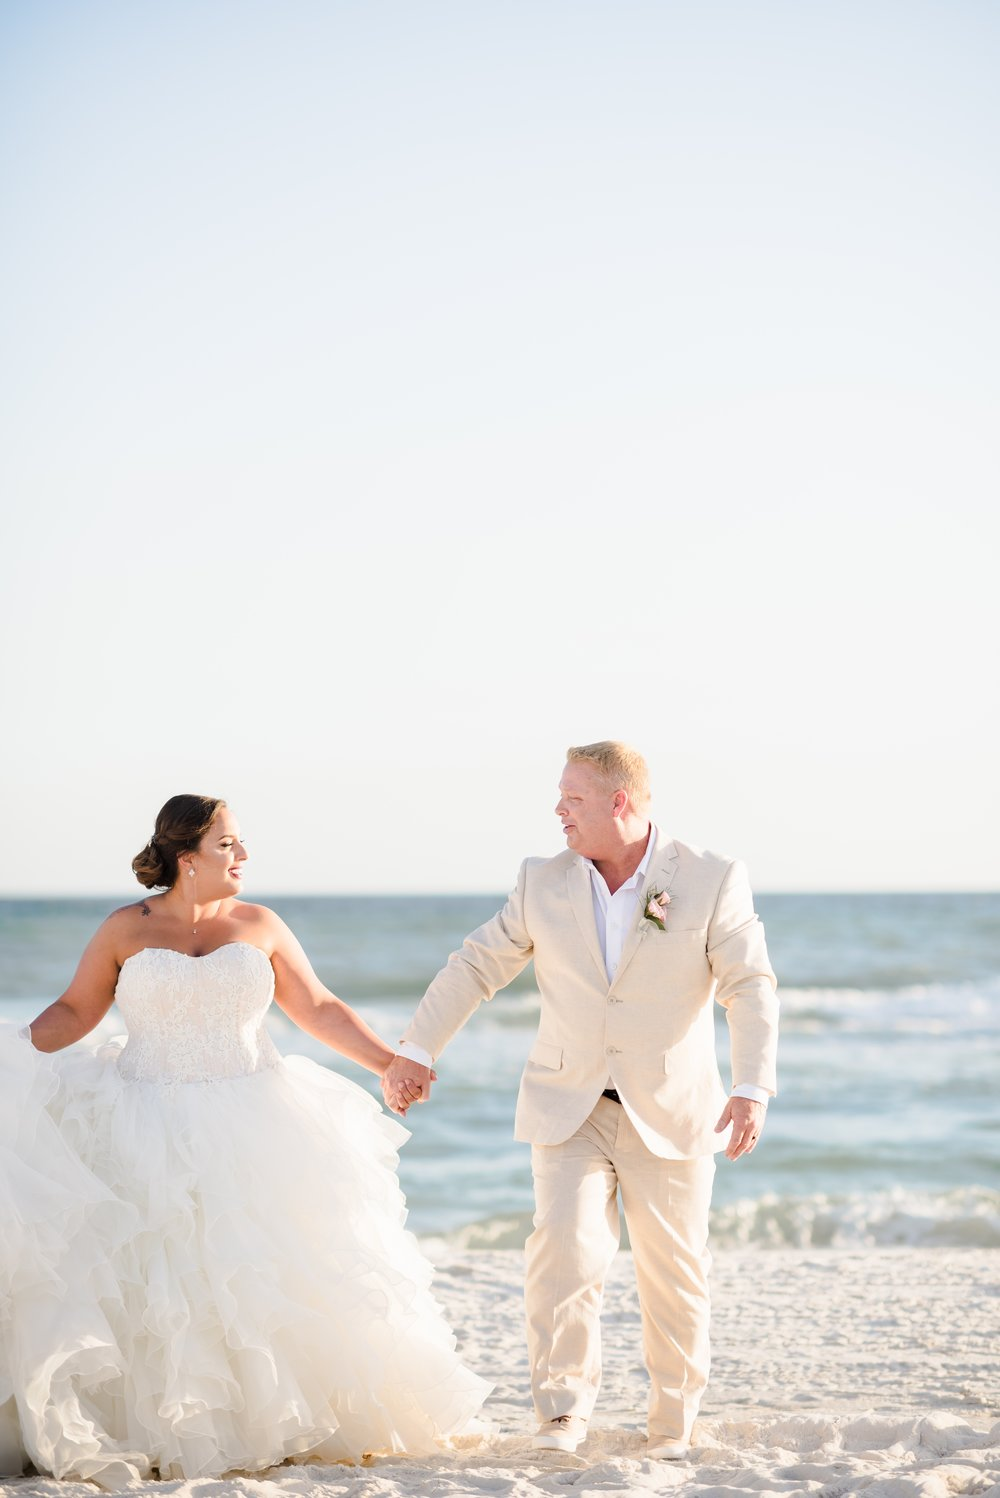 florida-wedding-photographer-kiersten-grant-69.jpg